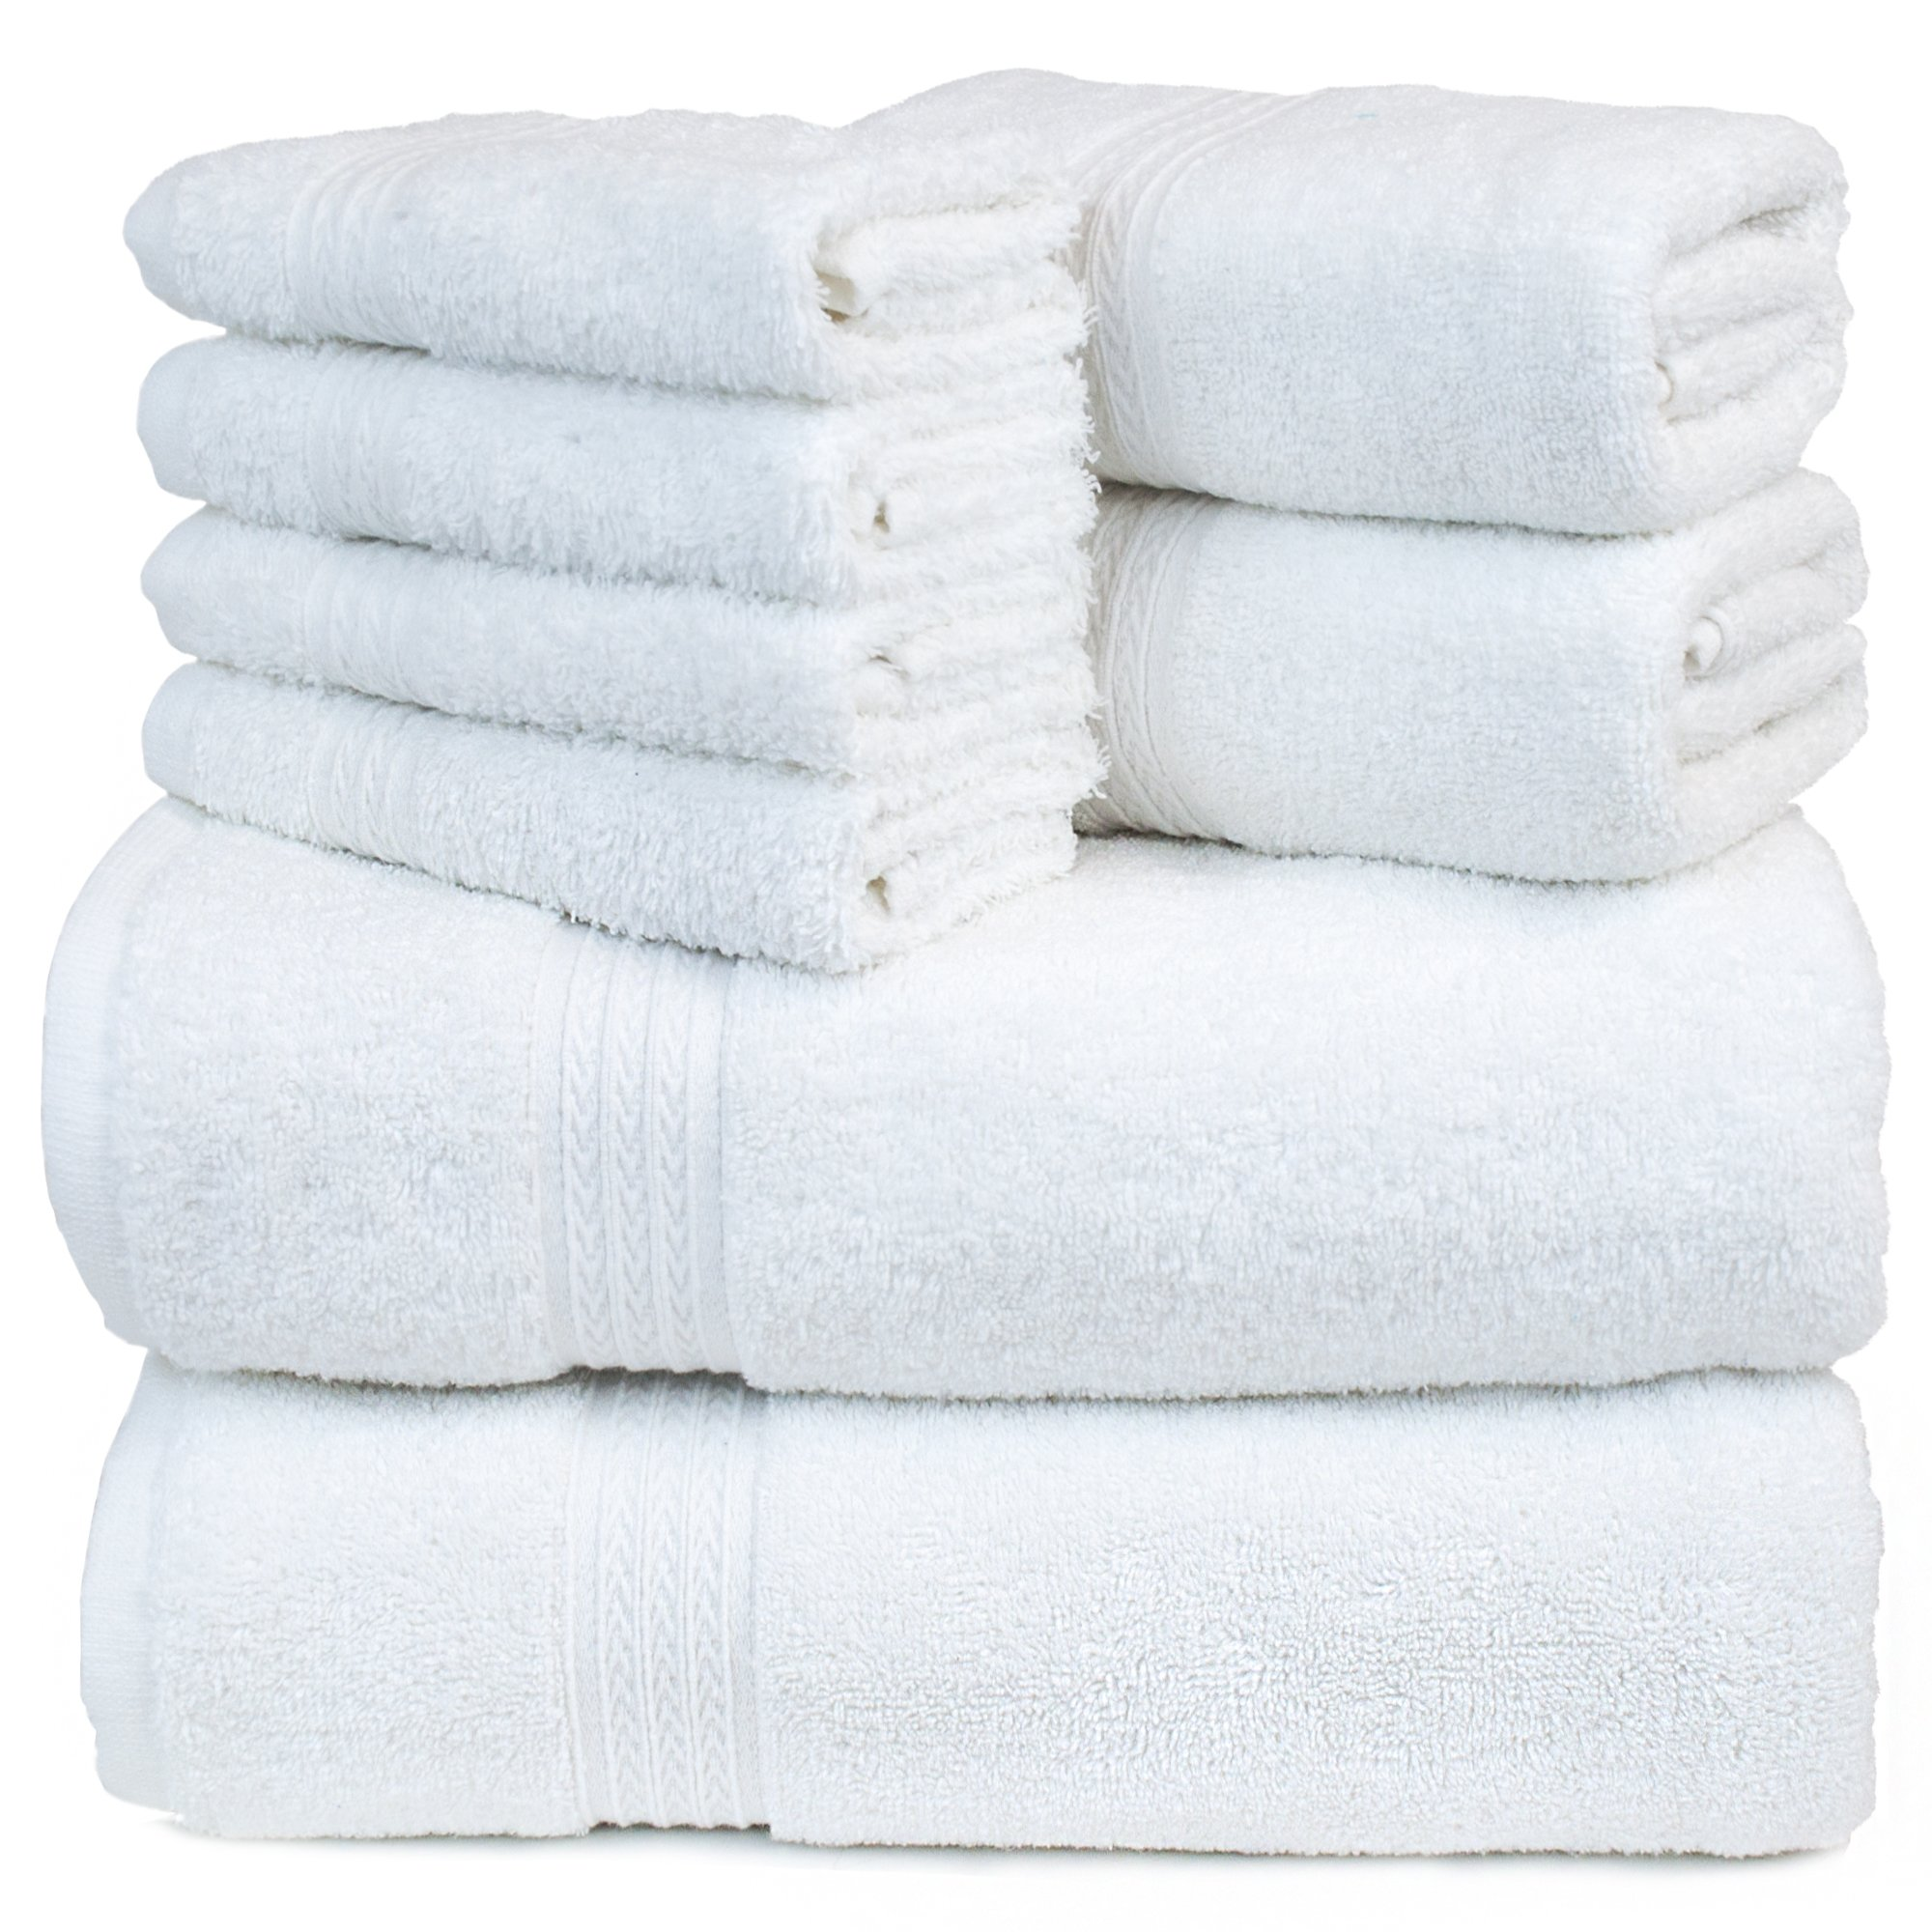 Eco Cotton Eight Piece Towel Set - White - Dobby Border - Set of 8